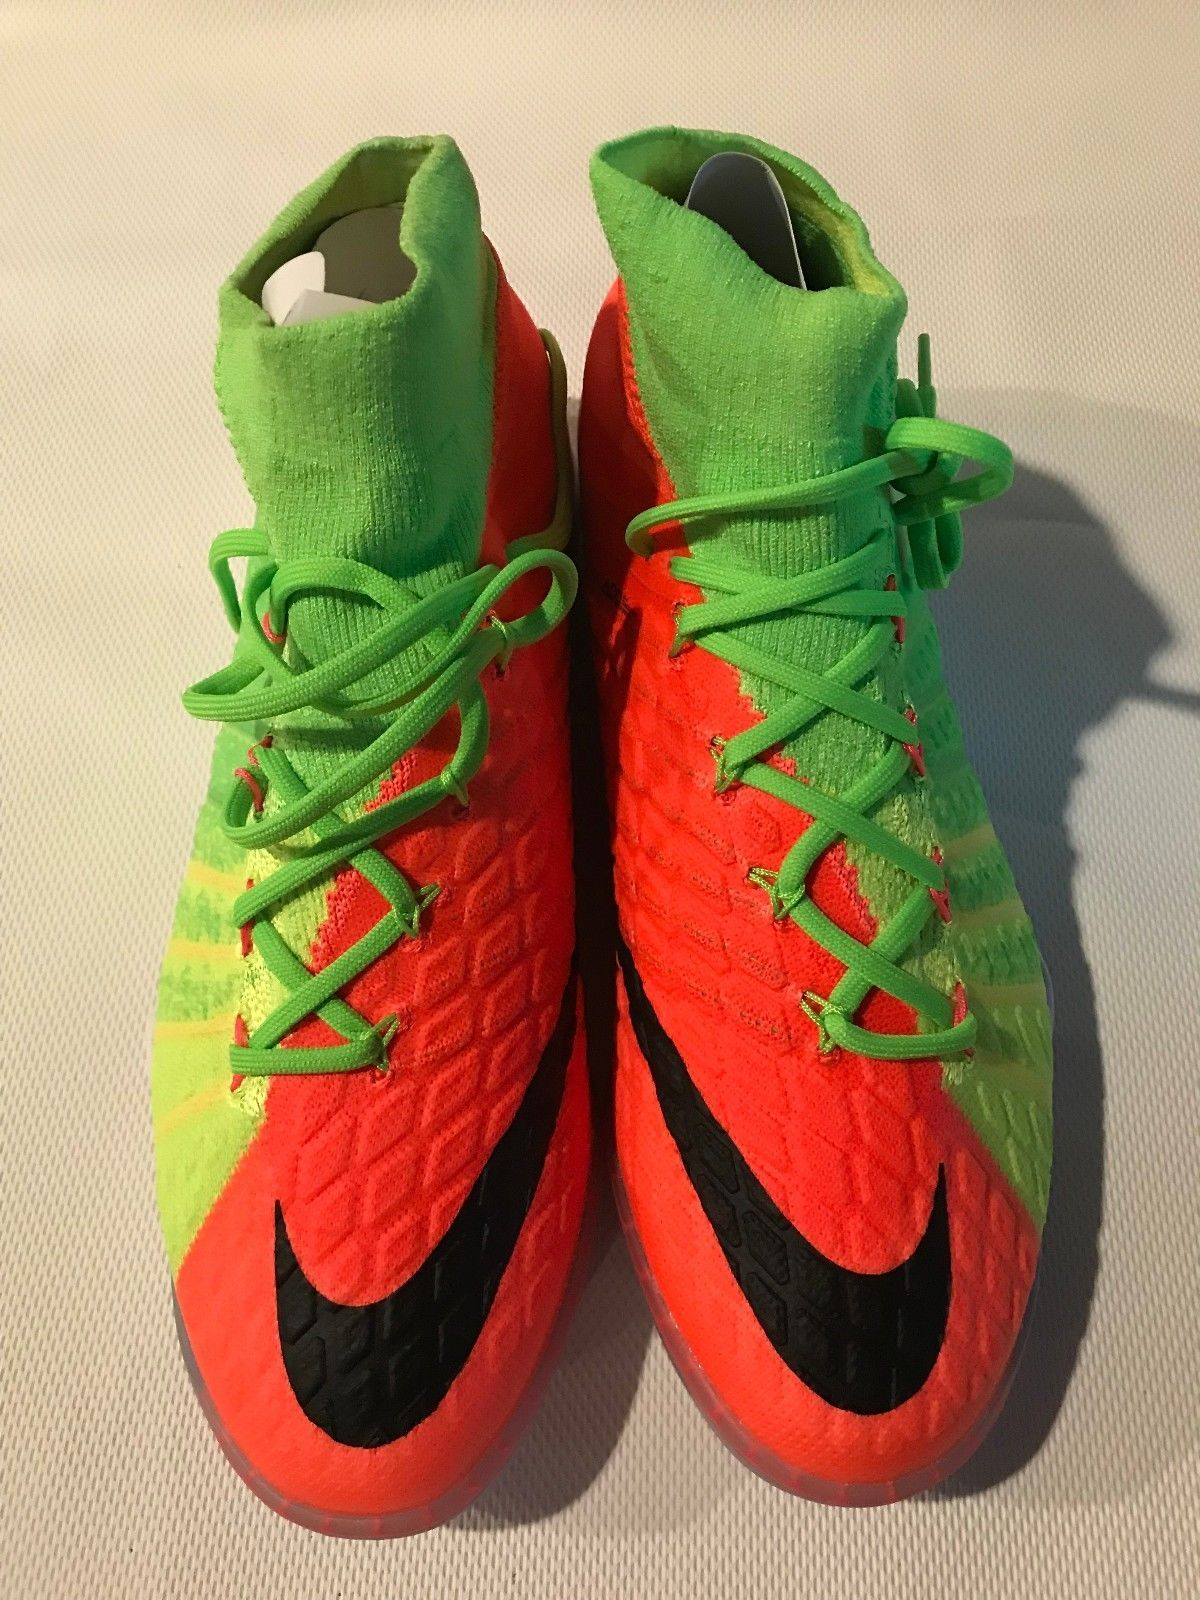 ad5708f78473 New Nike Hypervenomx Proximo Ii Df Size Us and 50 similar items. 57